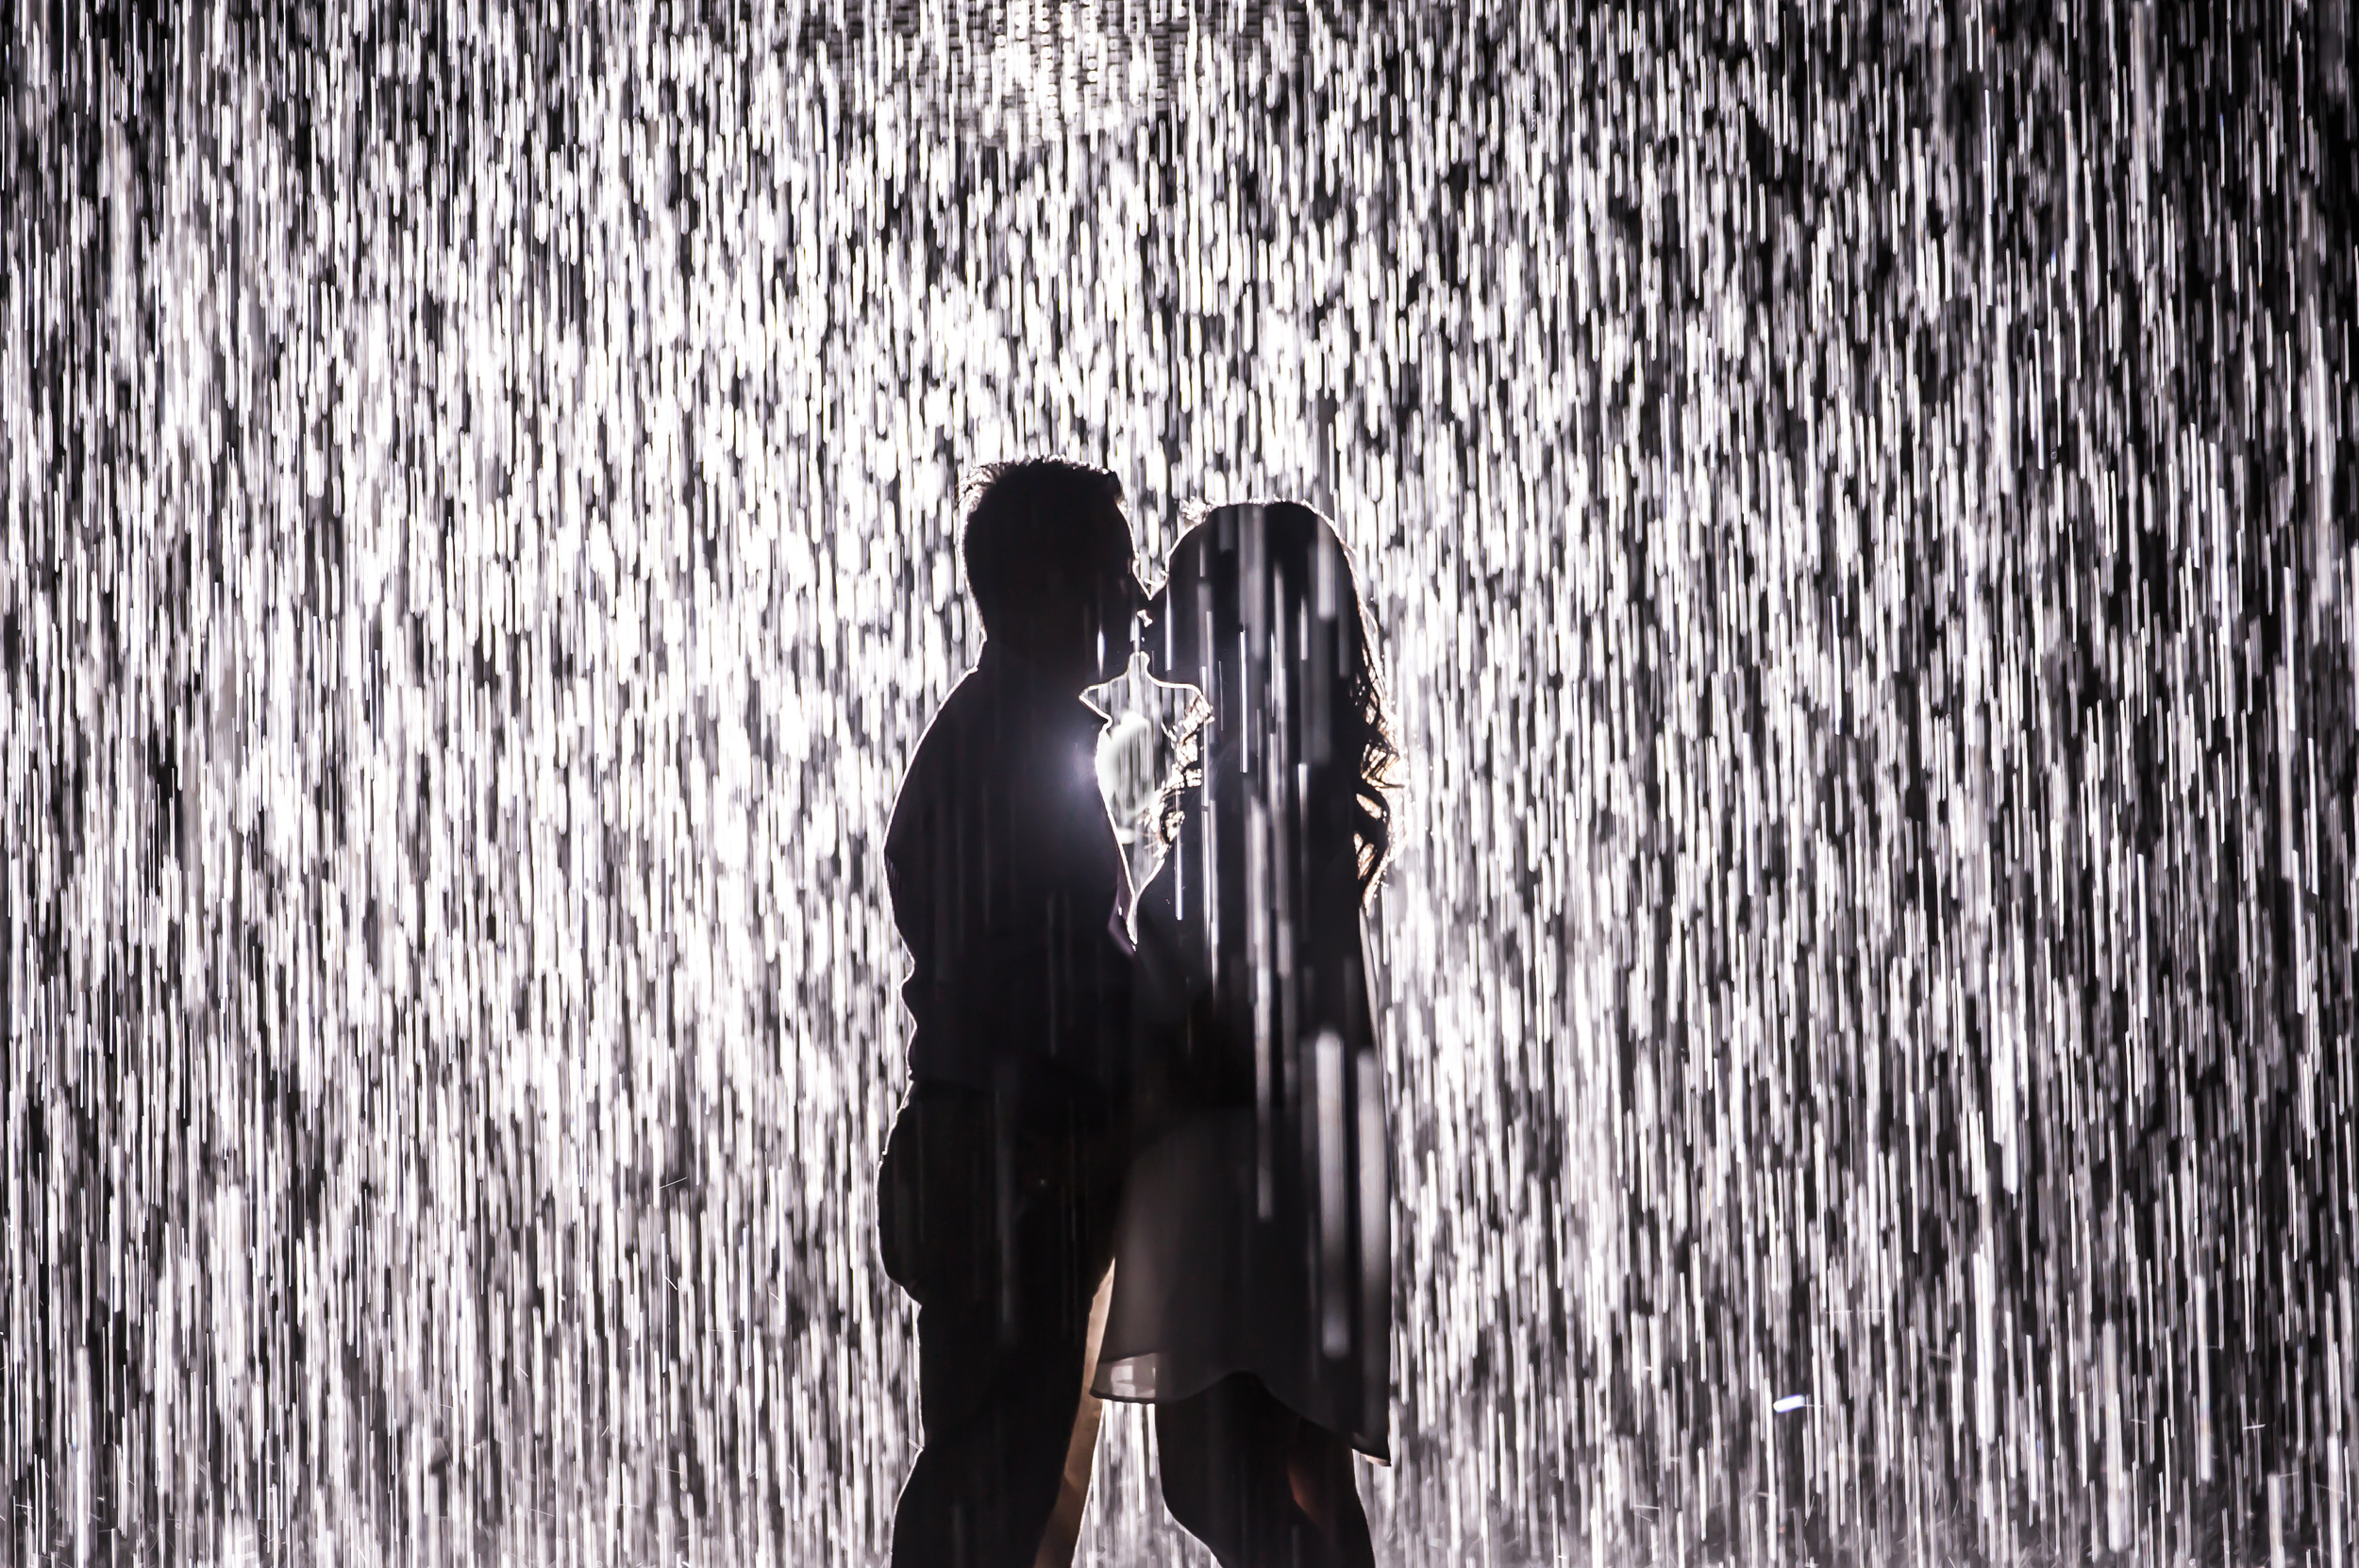 LACMA. RAINROOM.